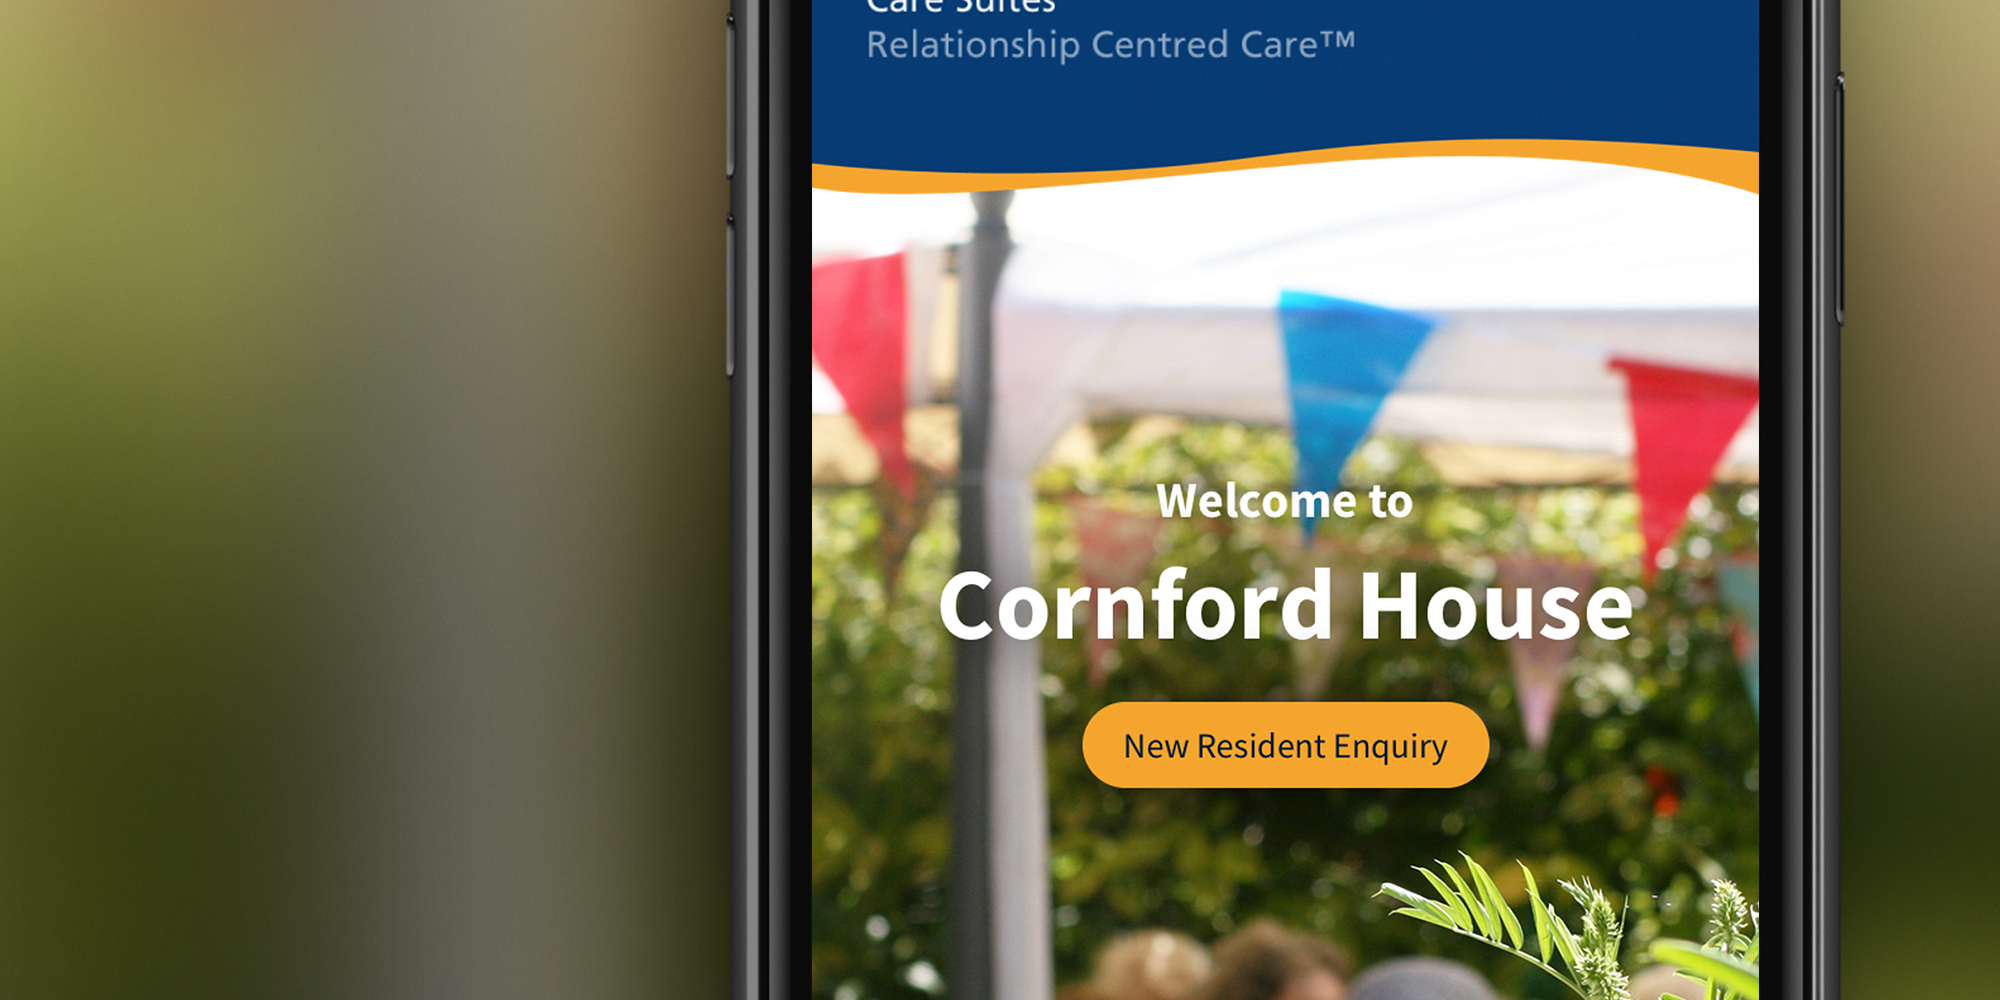 Call to Action detail on care home website